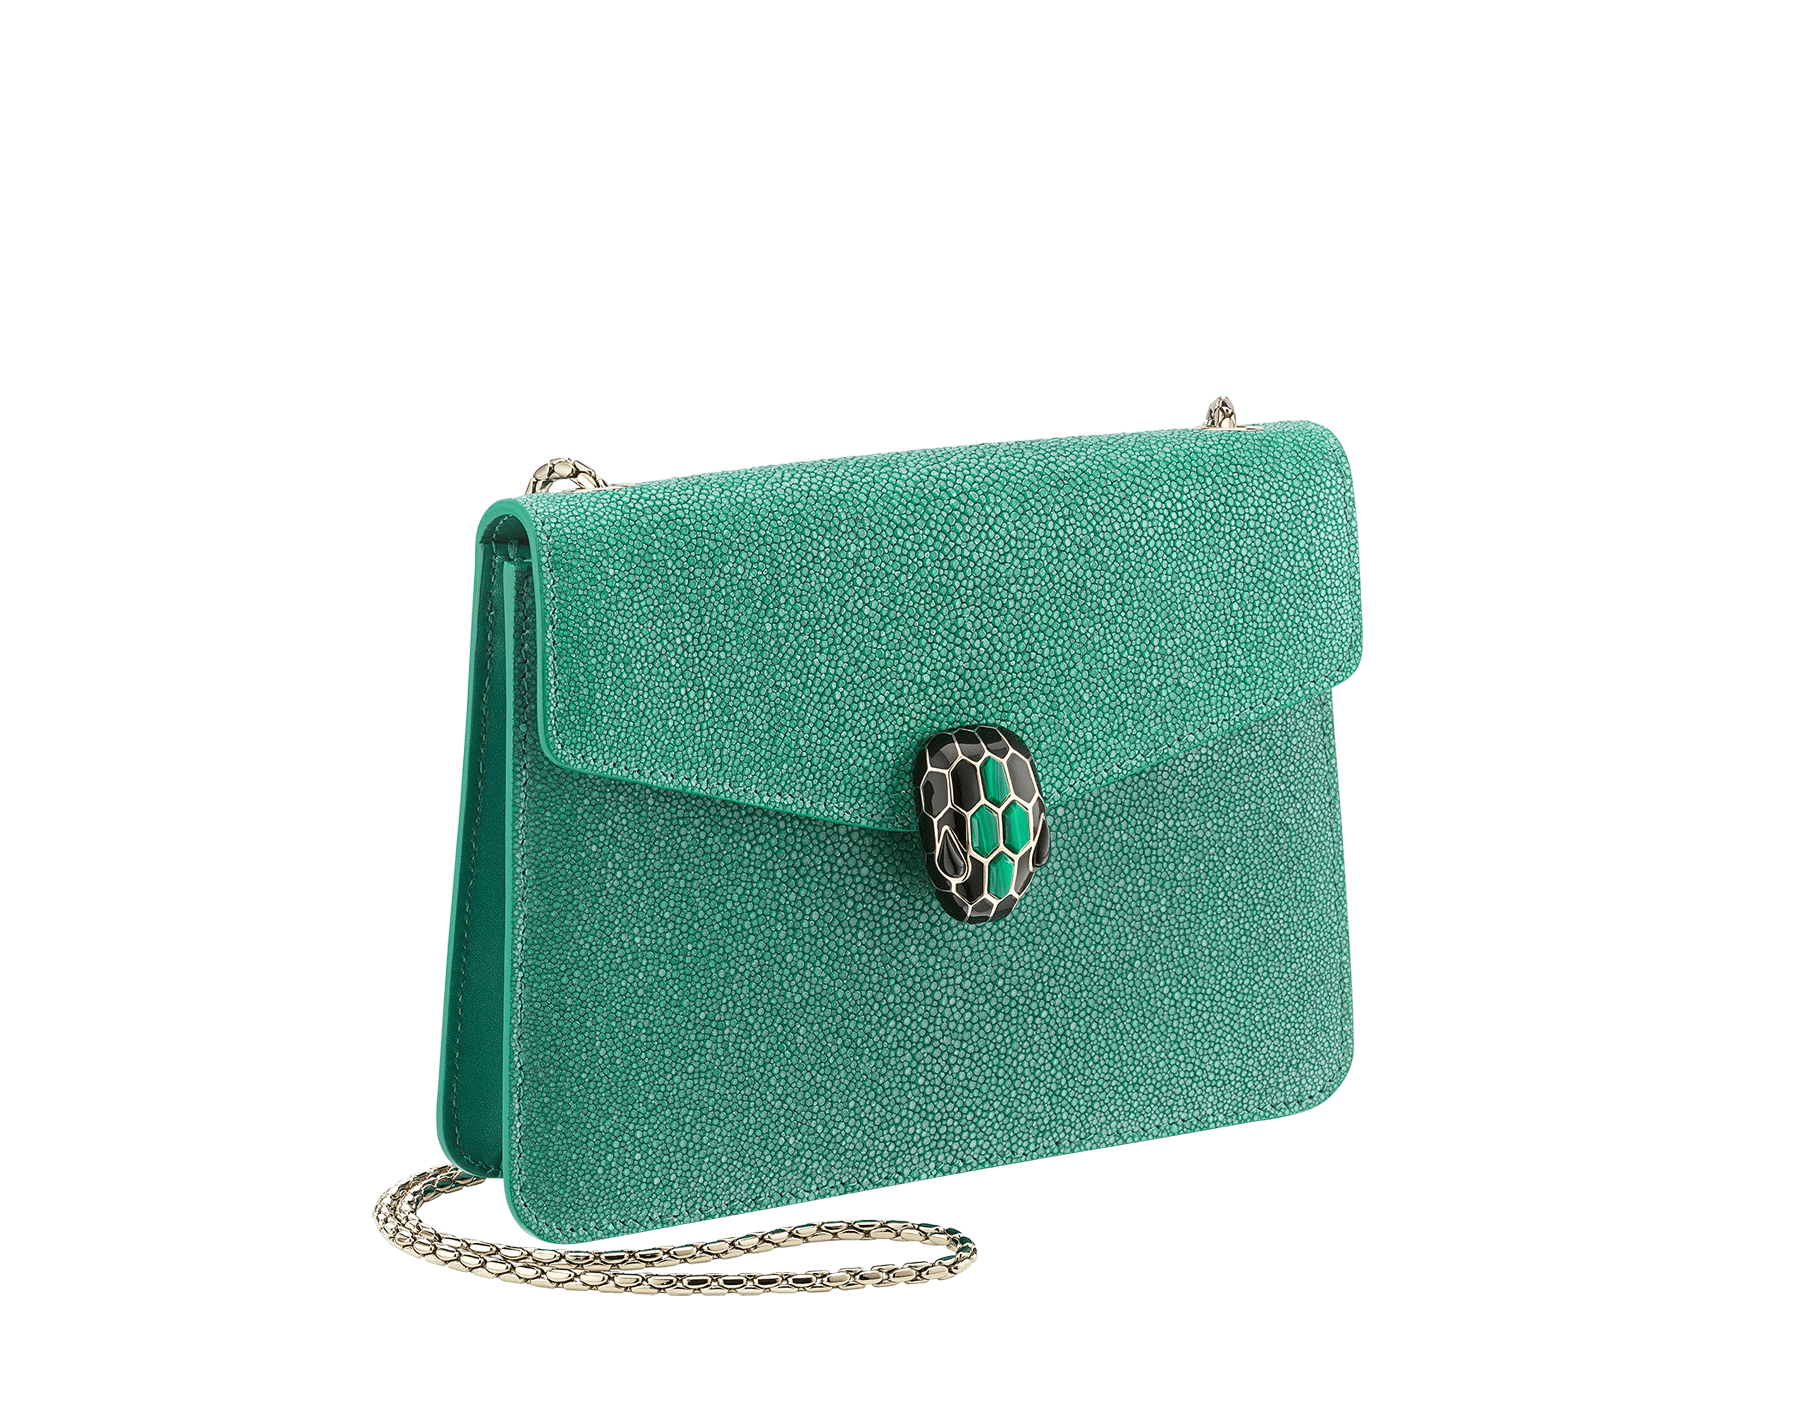 """Serpenti Forever"" crossbody bag in emerald green galuchat skin. Iconic snake head closure in light gold plated brass enriched with black enamel, malachite scales and black onyx eyes. 289021 image 2"